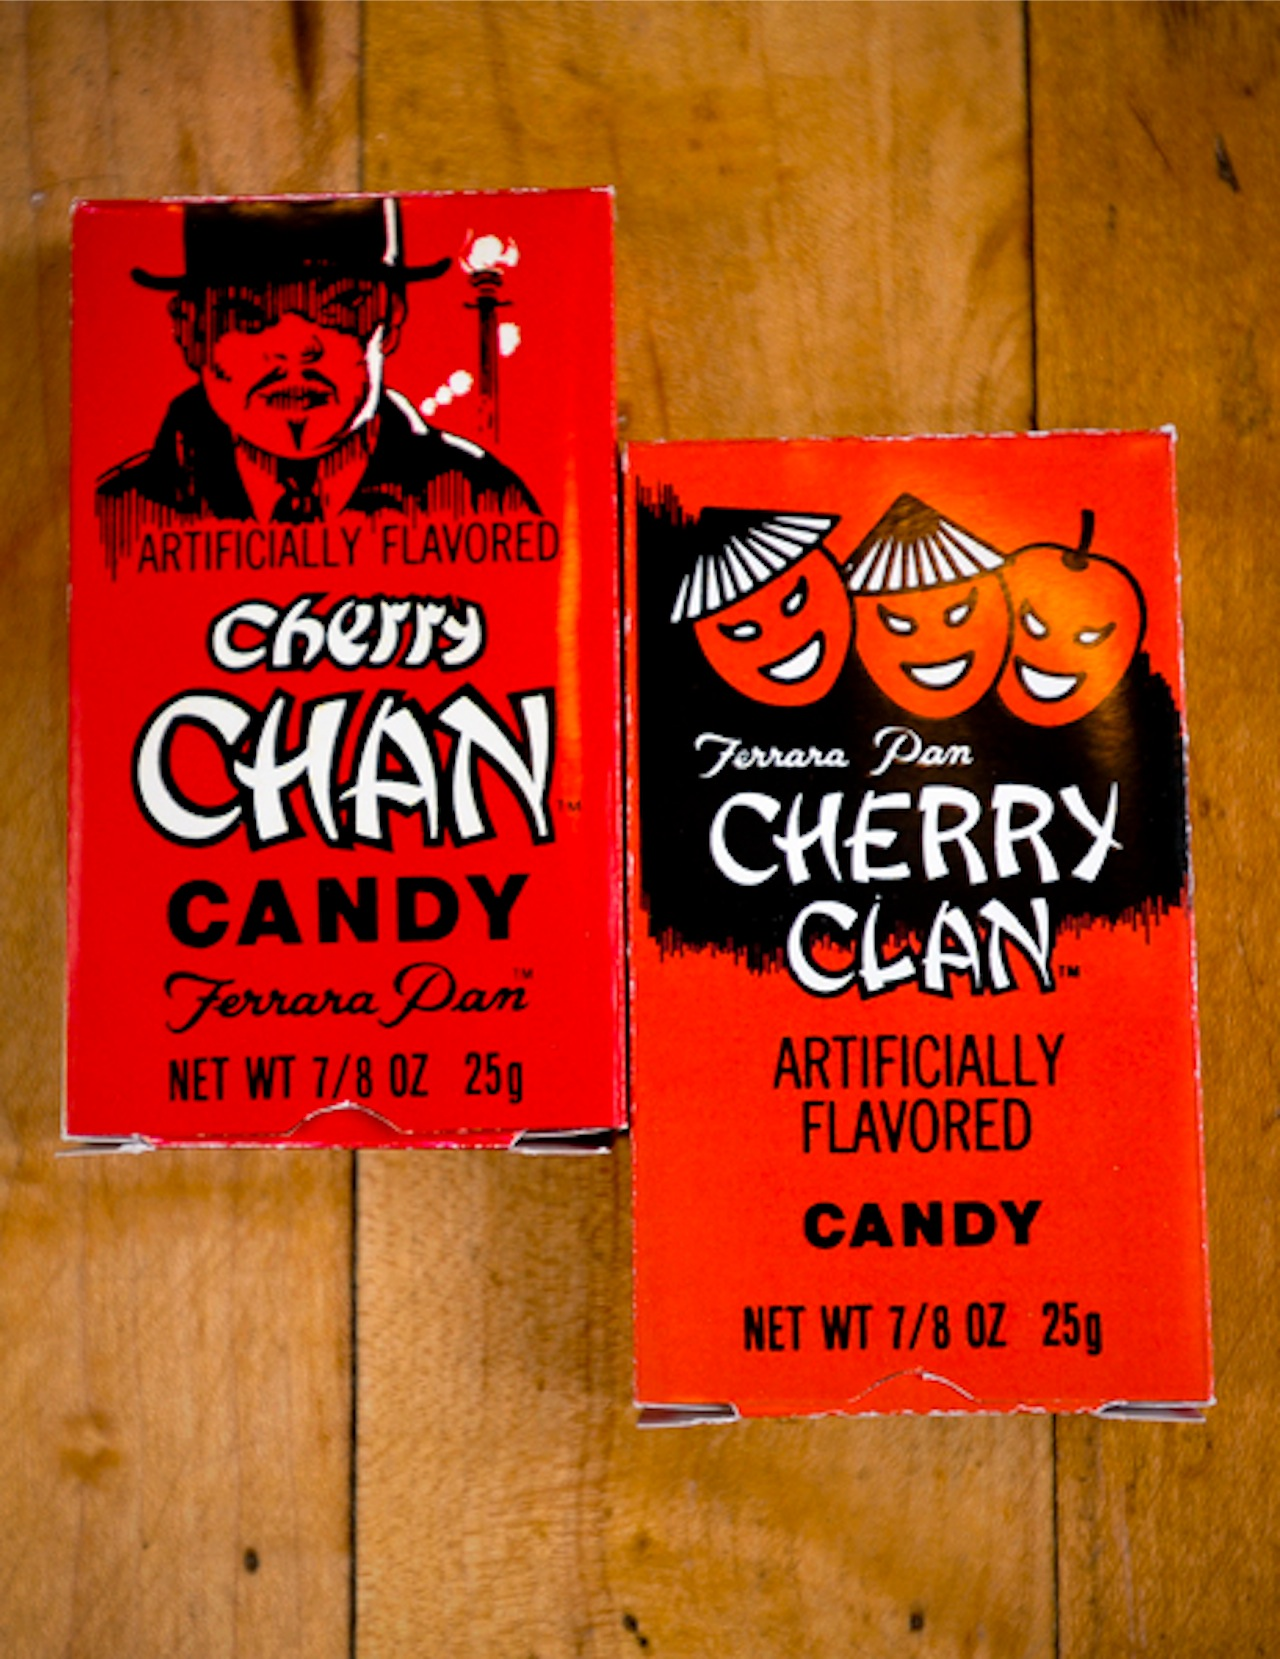 Cherry Chan and Cherry Clan boxes from Liebig's collection